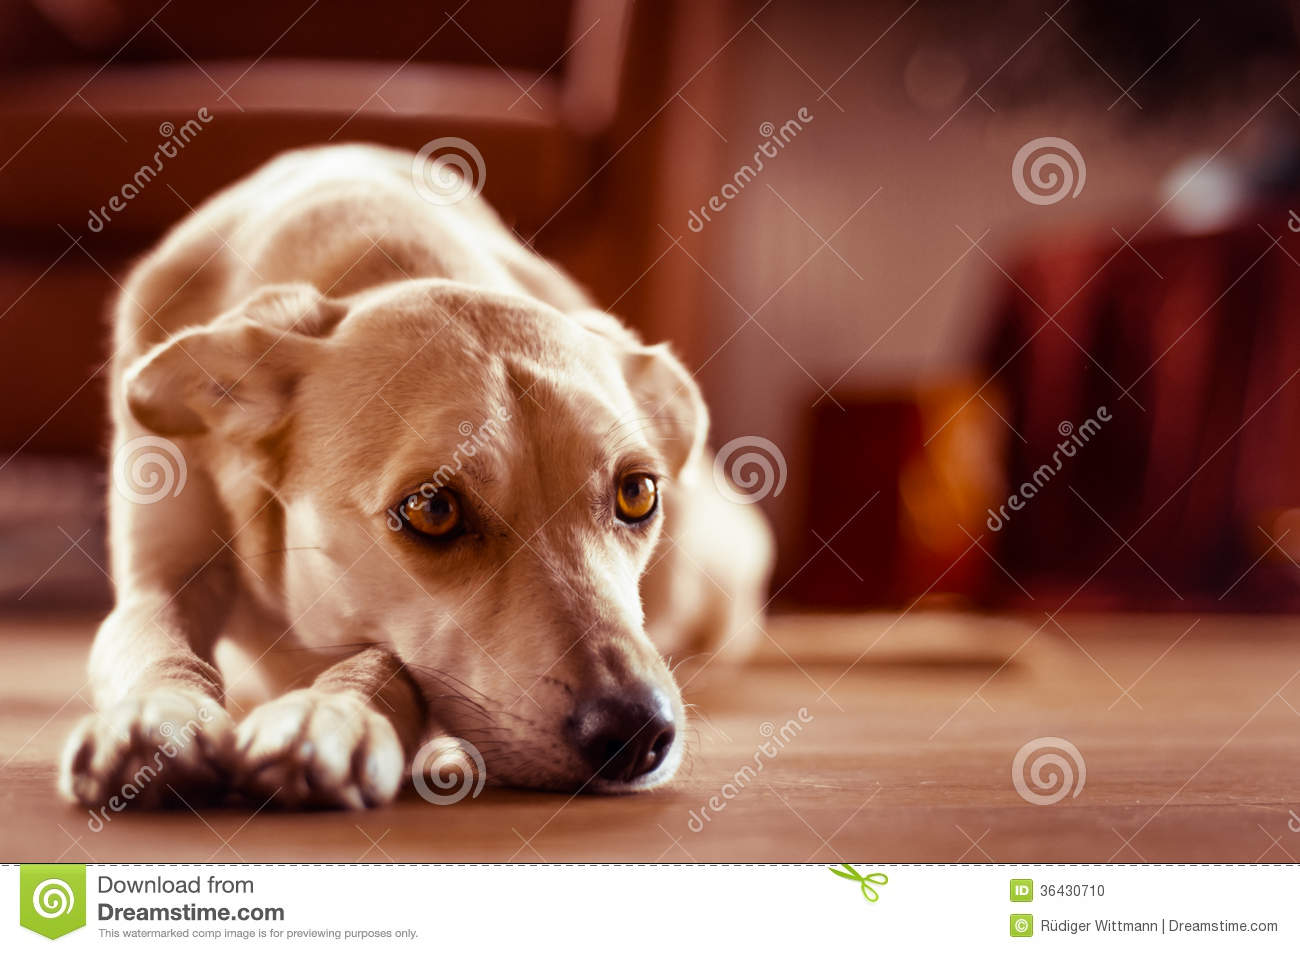 Relaxing Dog Stock Photo - Image: 36430710 Relaxing Dogs